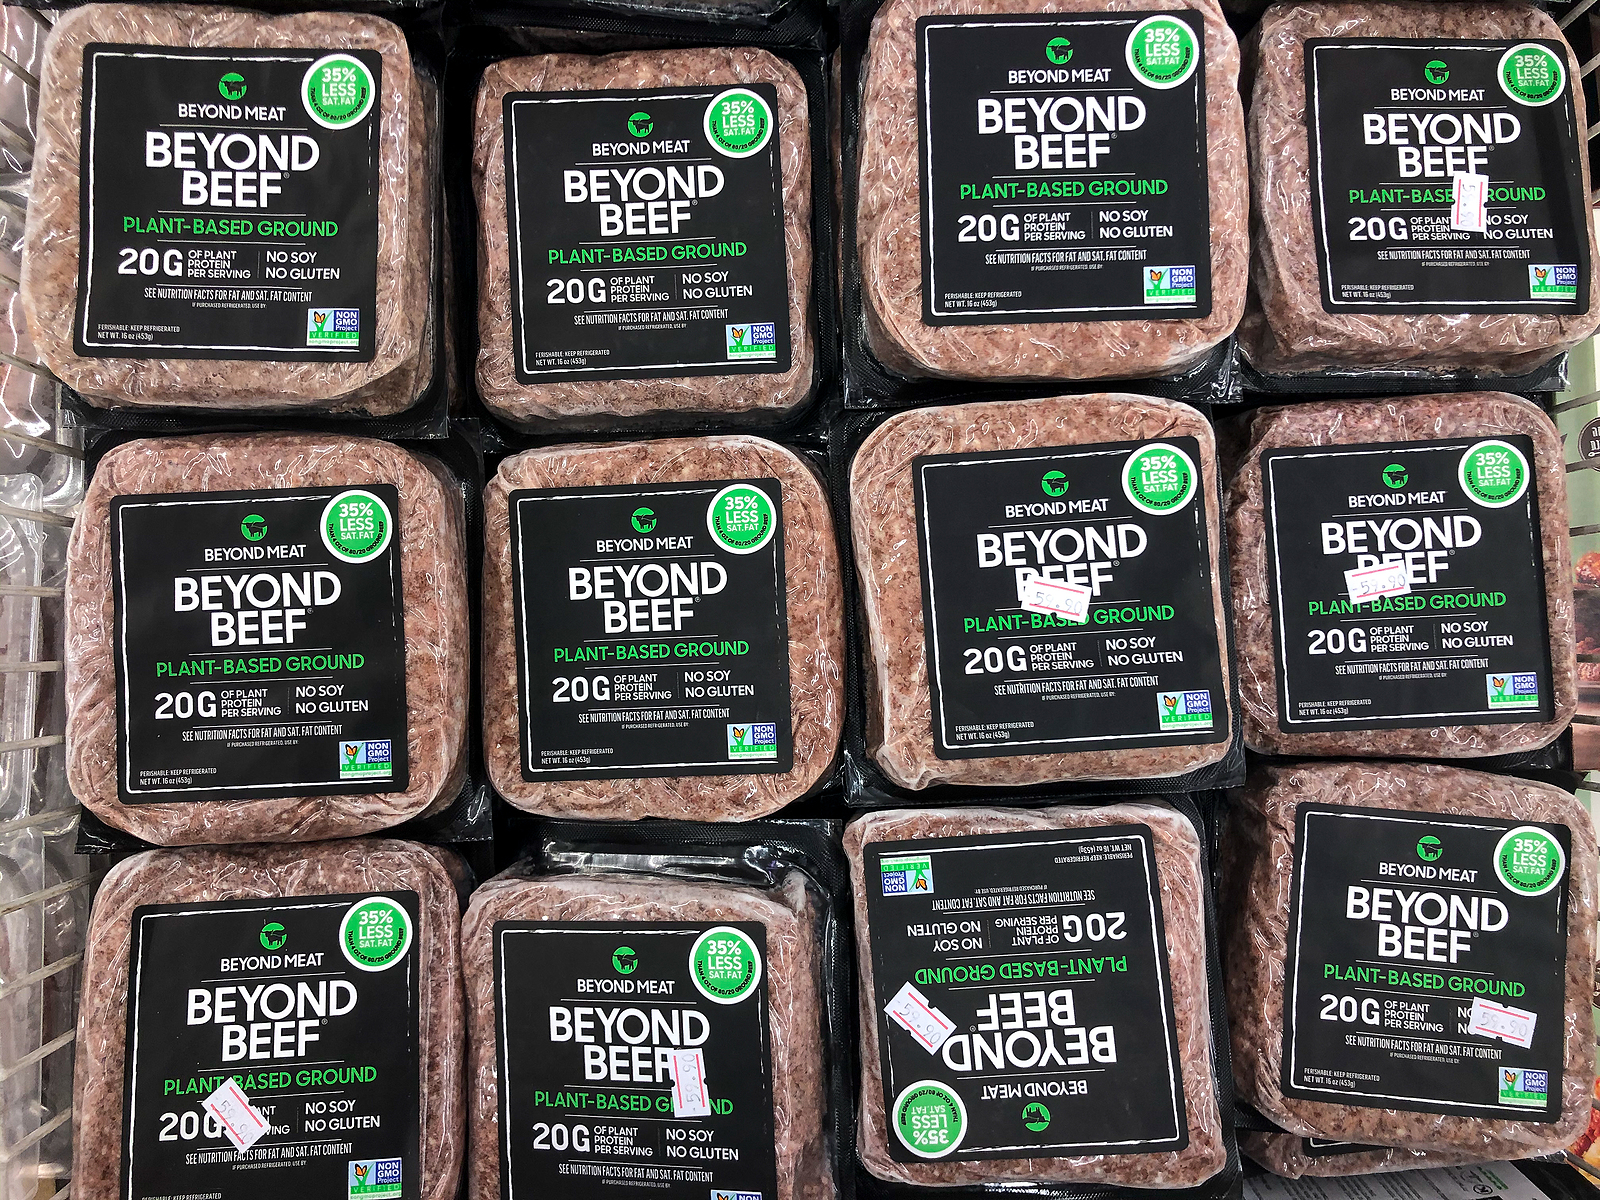 Beyond Meat stock, BYND stock news and analysis